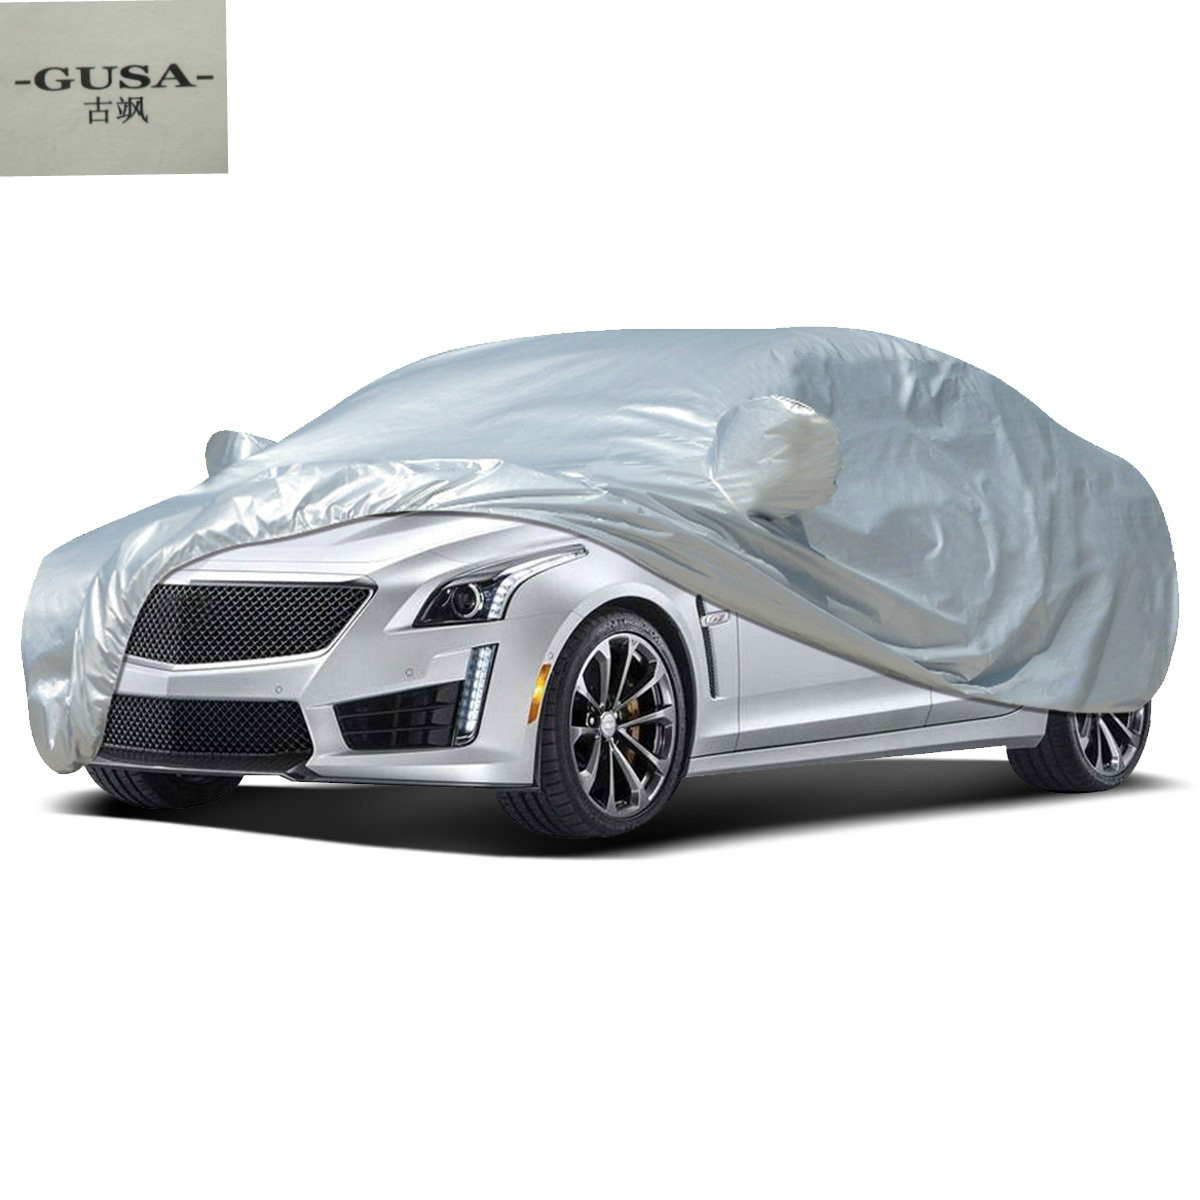 Indoor Outdoor Full Car Cover Zon Uv Sneeuw Dust Slip Bescherming Sml Xl Xxl Auto Covers Jassen Auto accessoires Sedan Suv D30